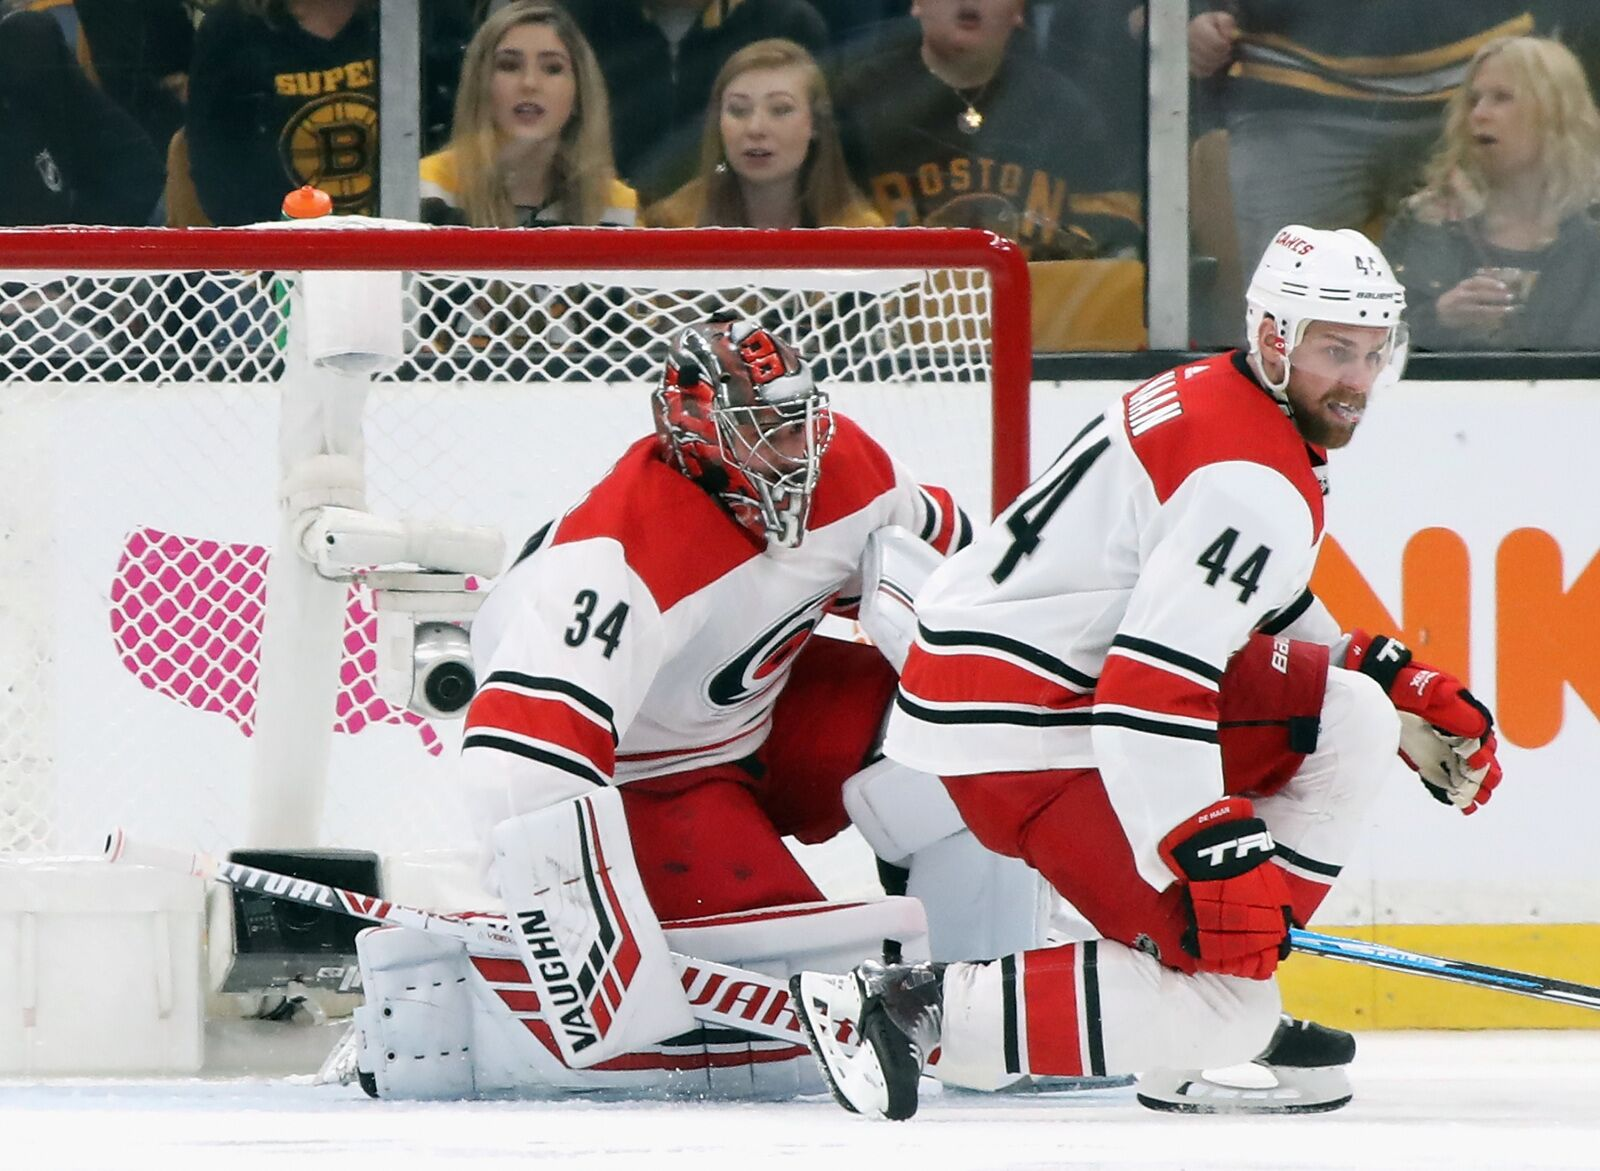 BOSTON, MASSACHUSETTS - MAY 12: Petr Mrazek #34 and Calvin de Haan #44 of the Carolina Hurricanes defend the net against the Boston Bruins in Game Two of the Eastern Conference Final during the 2019 NHL Stanley Cup Playoffs at TD Garden on May 12, 2019 in Boston, Massachusetts. (Photo by Bruce Bennett/Getty Images)